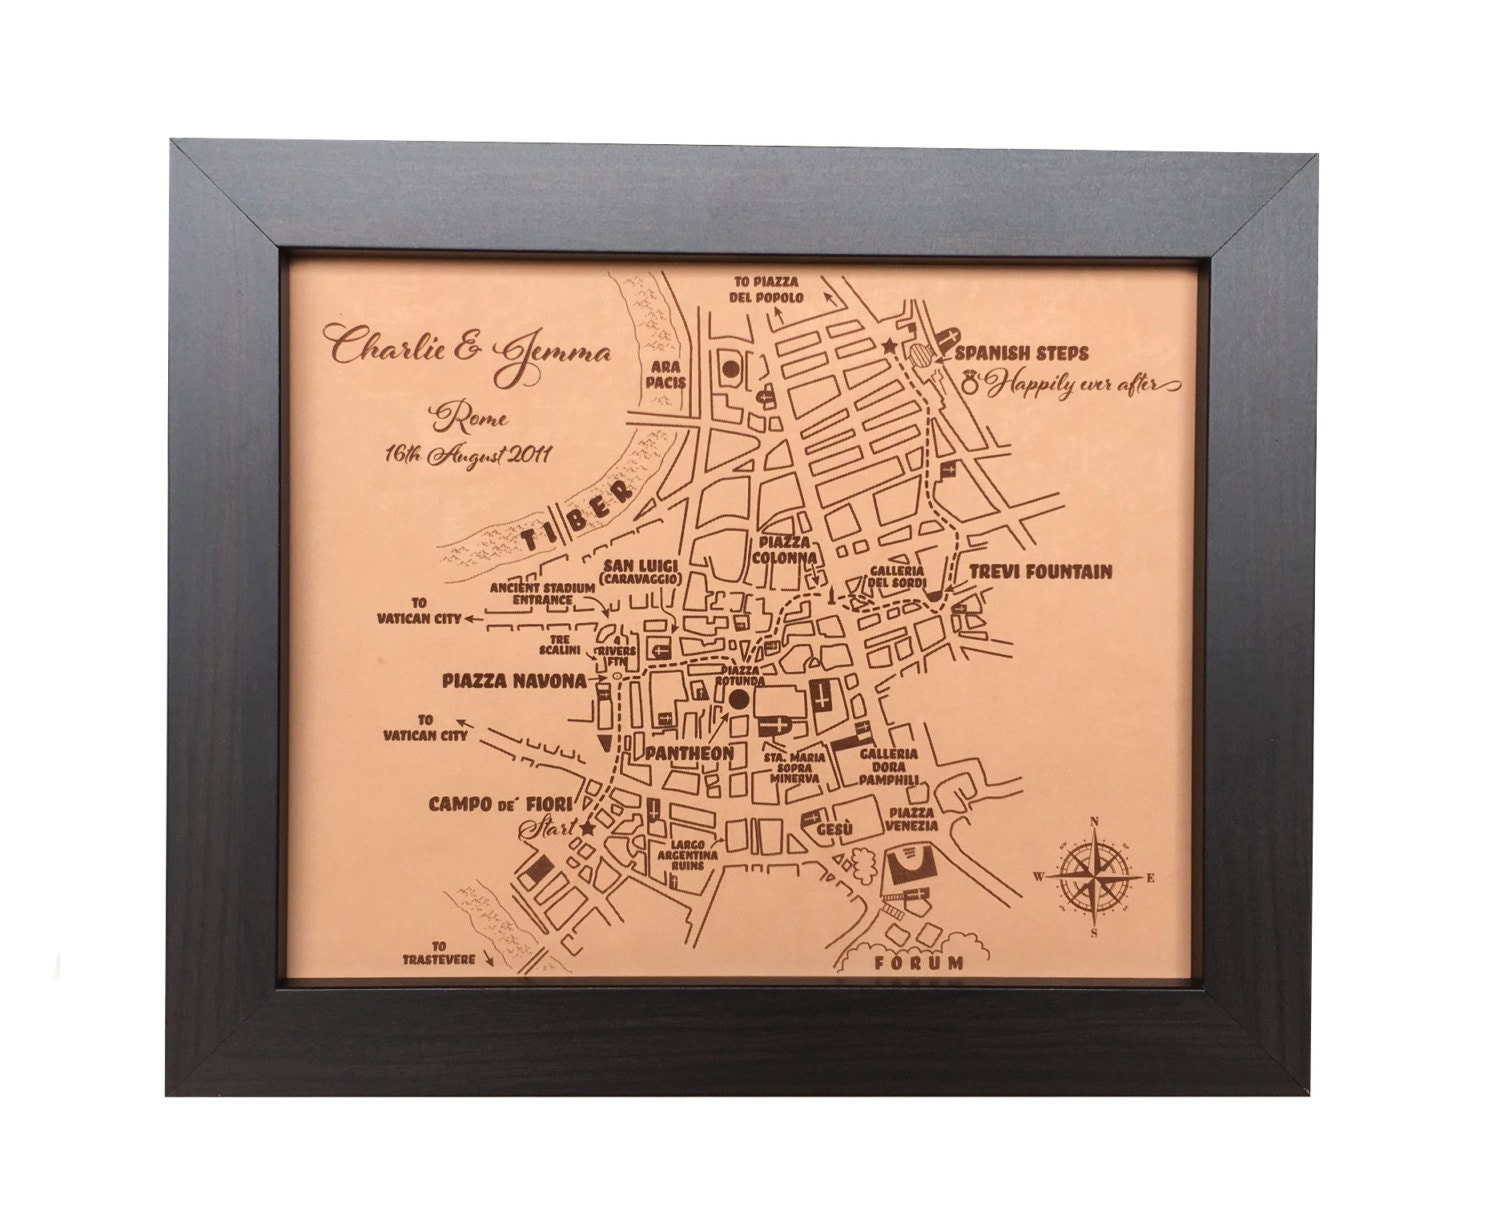 Leather Wedding Anniversary Gifts For Her: Leather Anniversary Gift For Her Custom Leather City Map 3rd